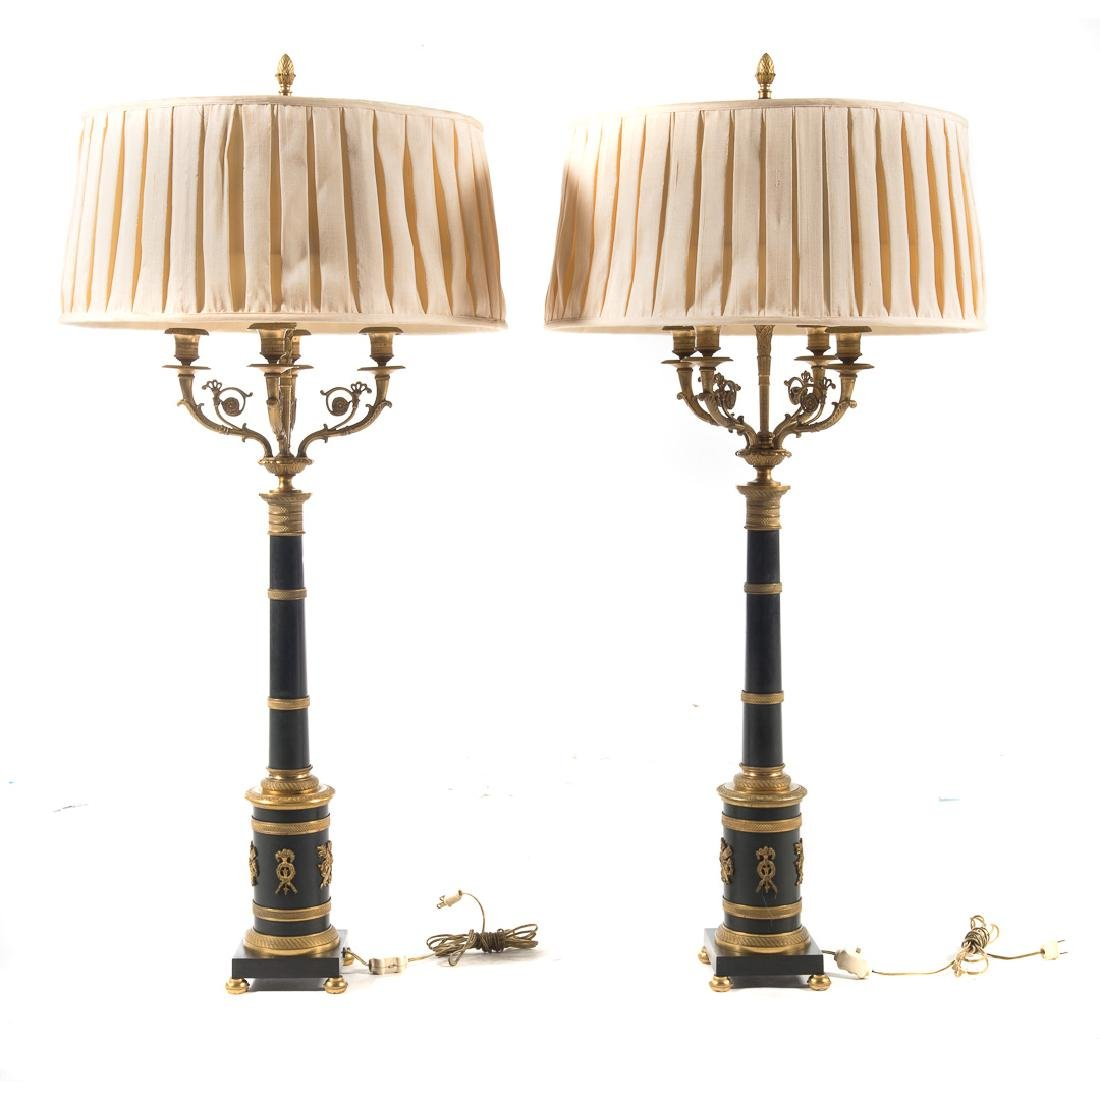 Pair French Empire style bronze lamps - 4